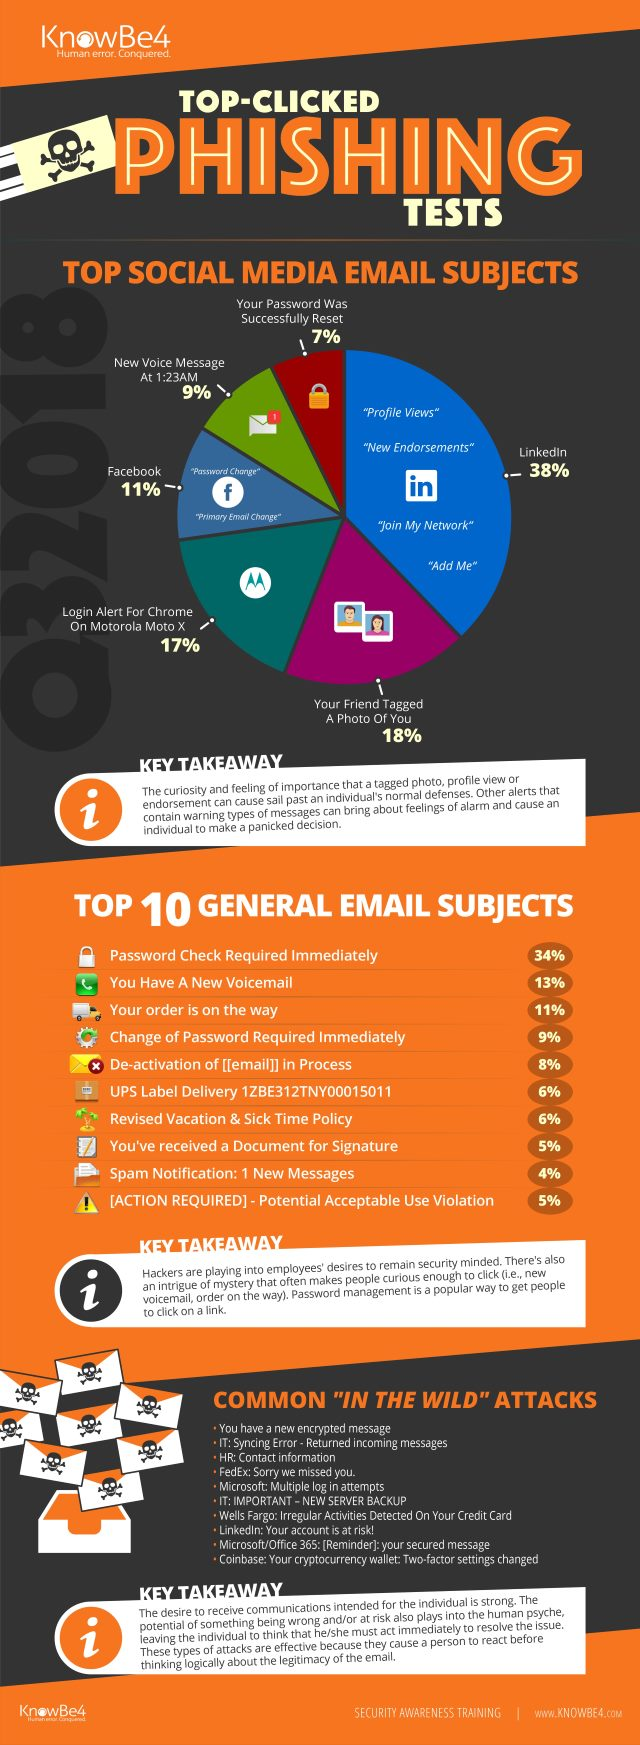 Top phishing subjects